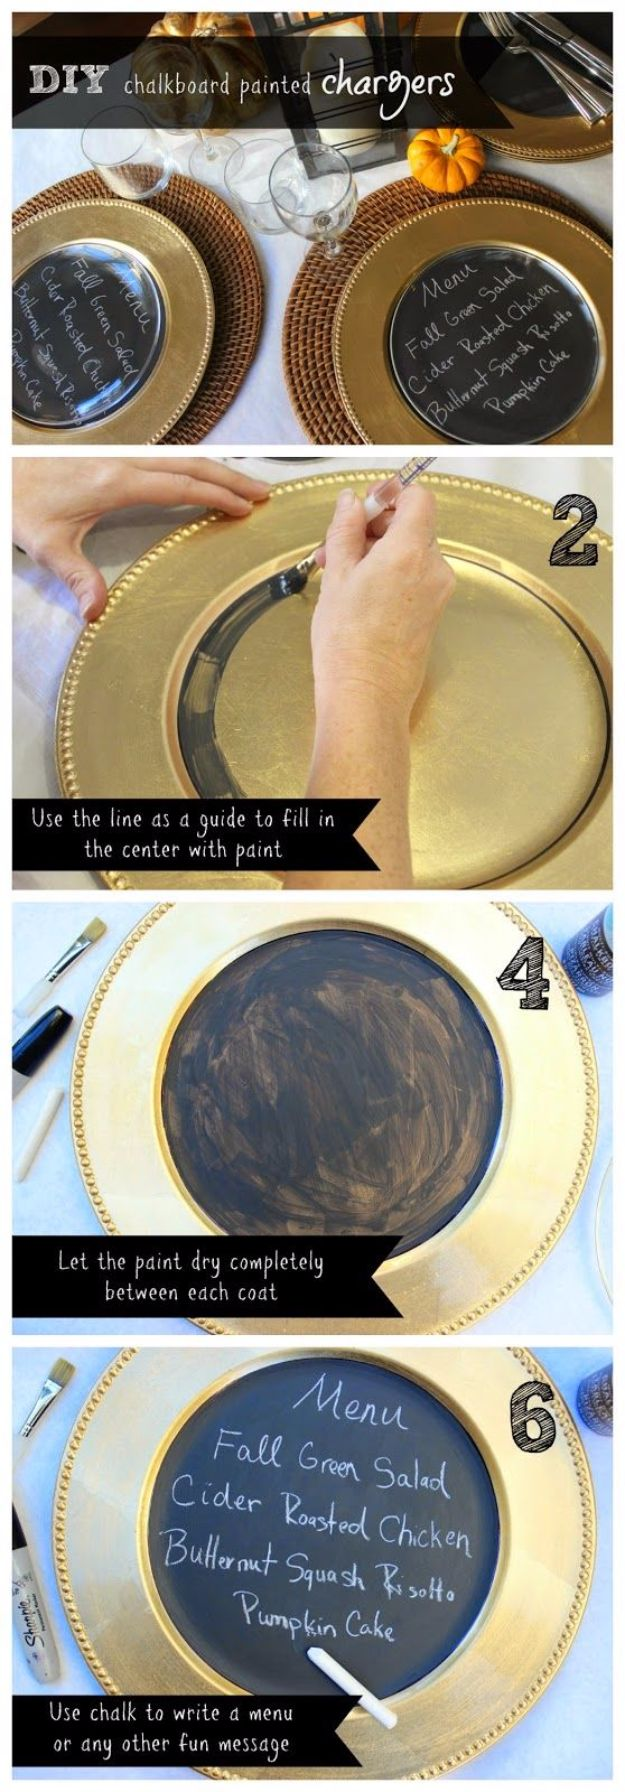 DIY Chalkboard Paint Ideas for Furniture Projects, Home Decor, Kitchen, Bedroom, Signs and Crafts for Teens. | Chalkboard Painted Chargers